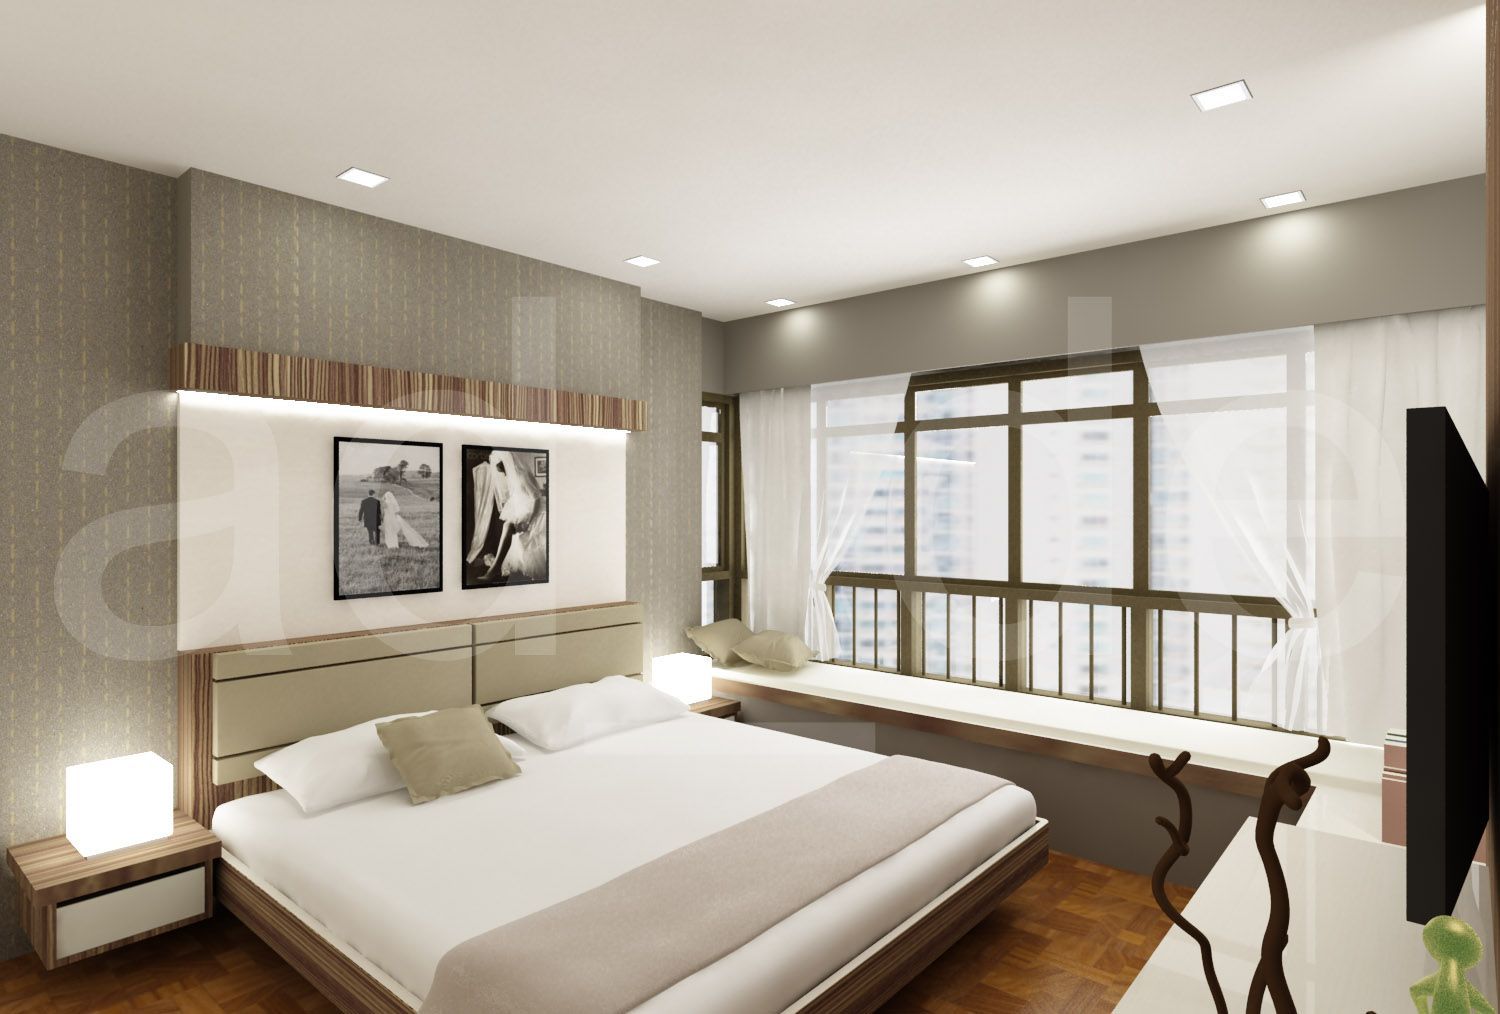 interior designer adrian lau hdb and condo bedroom 3d designs vincent interior blog - Condo Bedroom Design